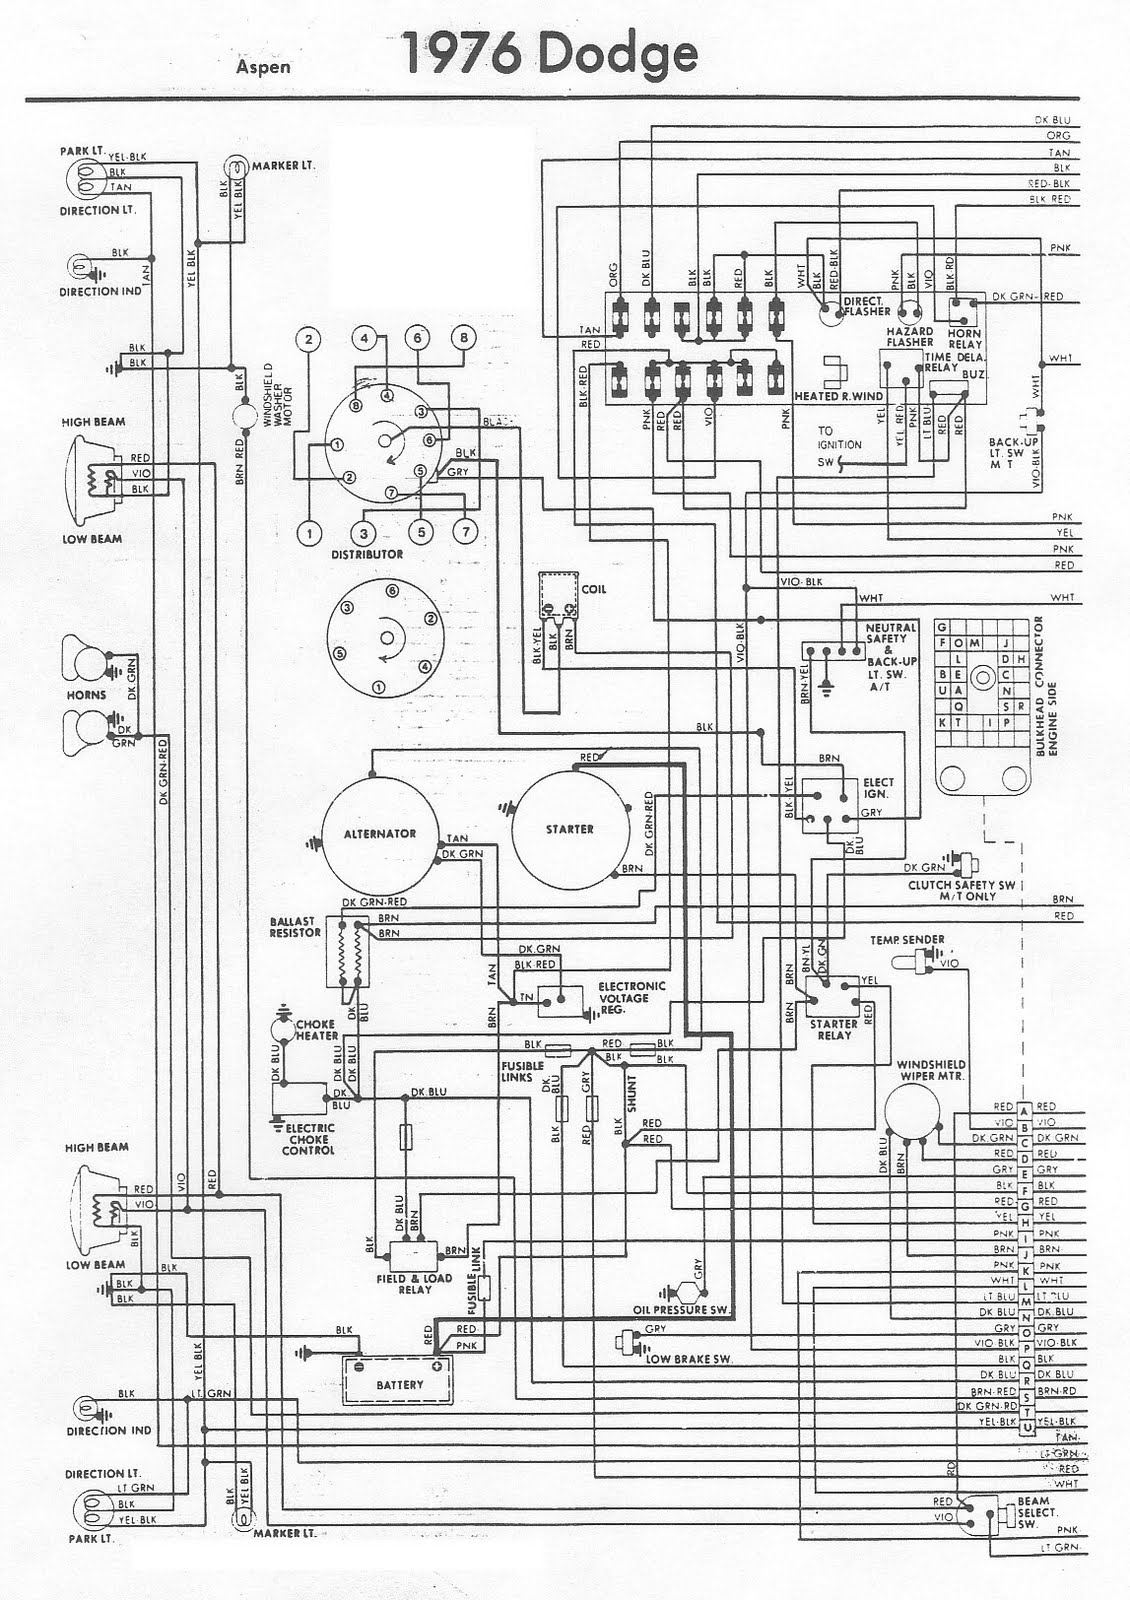 1976 Alfa Romeo Spider Wiring Diagram 156 Jtd Best Library93 Dodge Dakota Schema